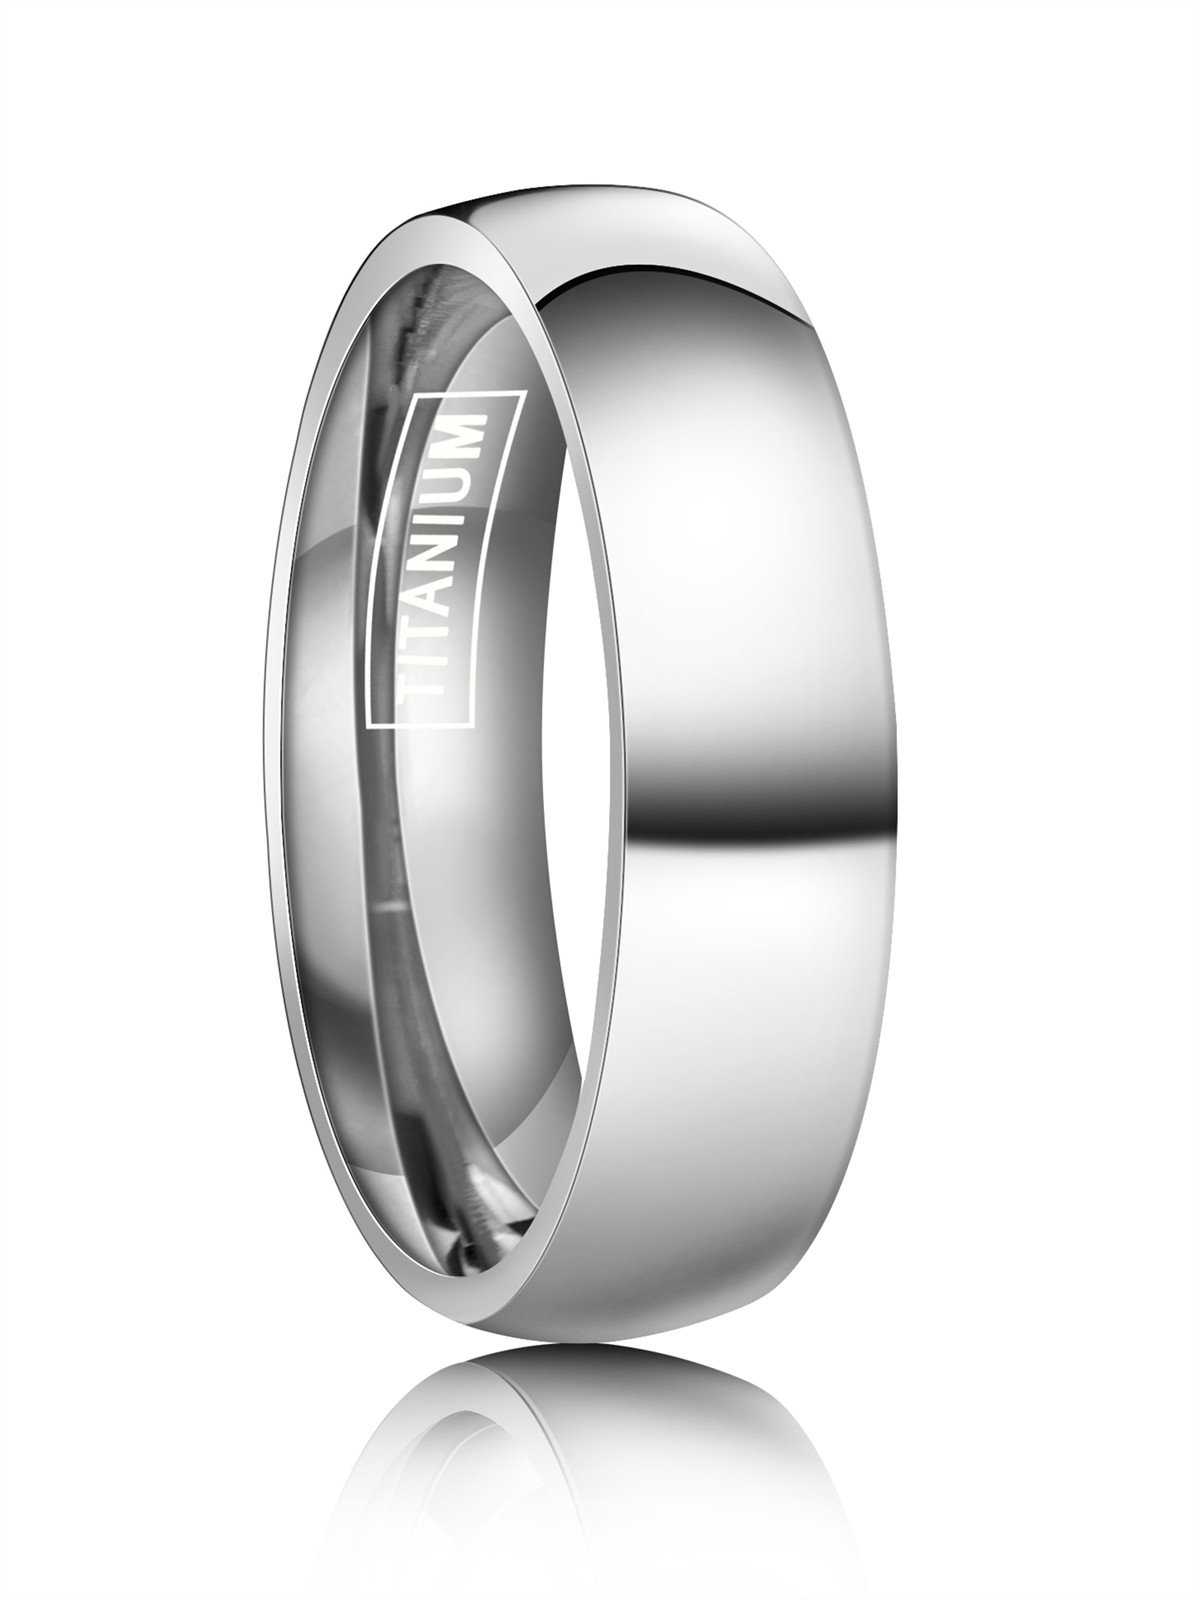 Just Lsy 6mm Silver Titanium Rings Plain Dome High Polished Wedding Band in Comfort Fit Size 12.5 Lsy-005